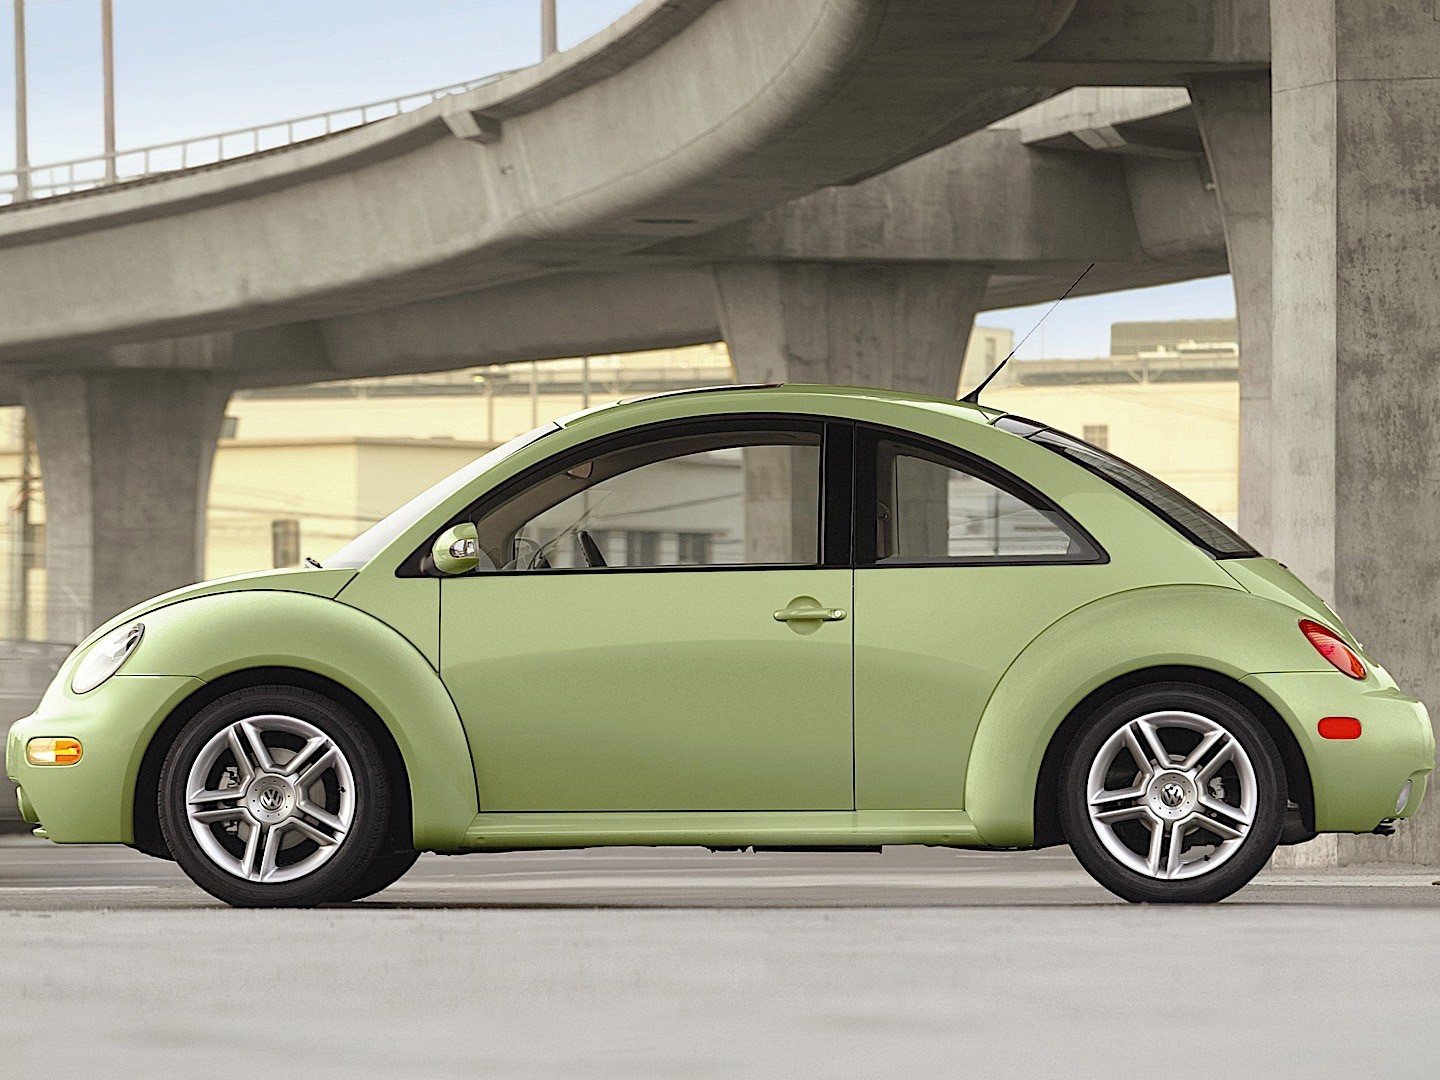 VOLKSWAGEN Beetle specs & photos - 1998, 1999, 2000, 2001, 2002, 2003, 2004, 2005 - autoevolution